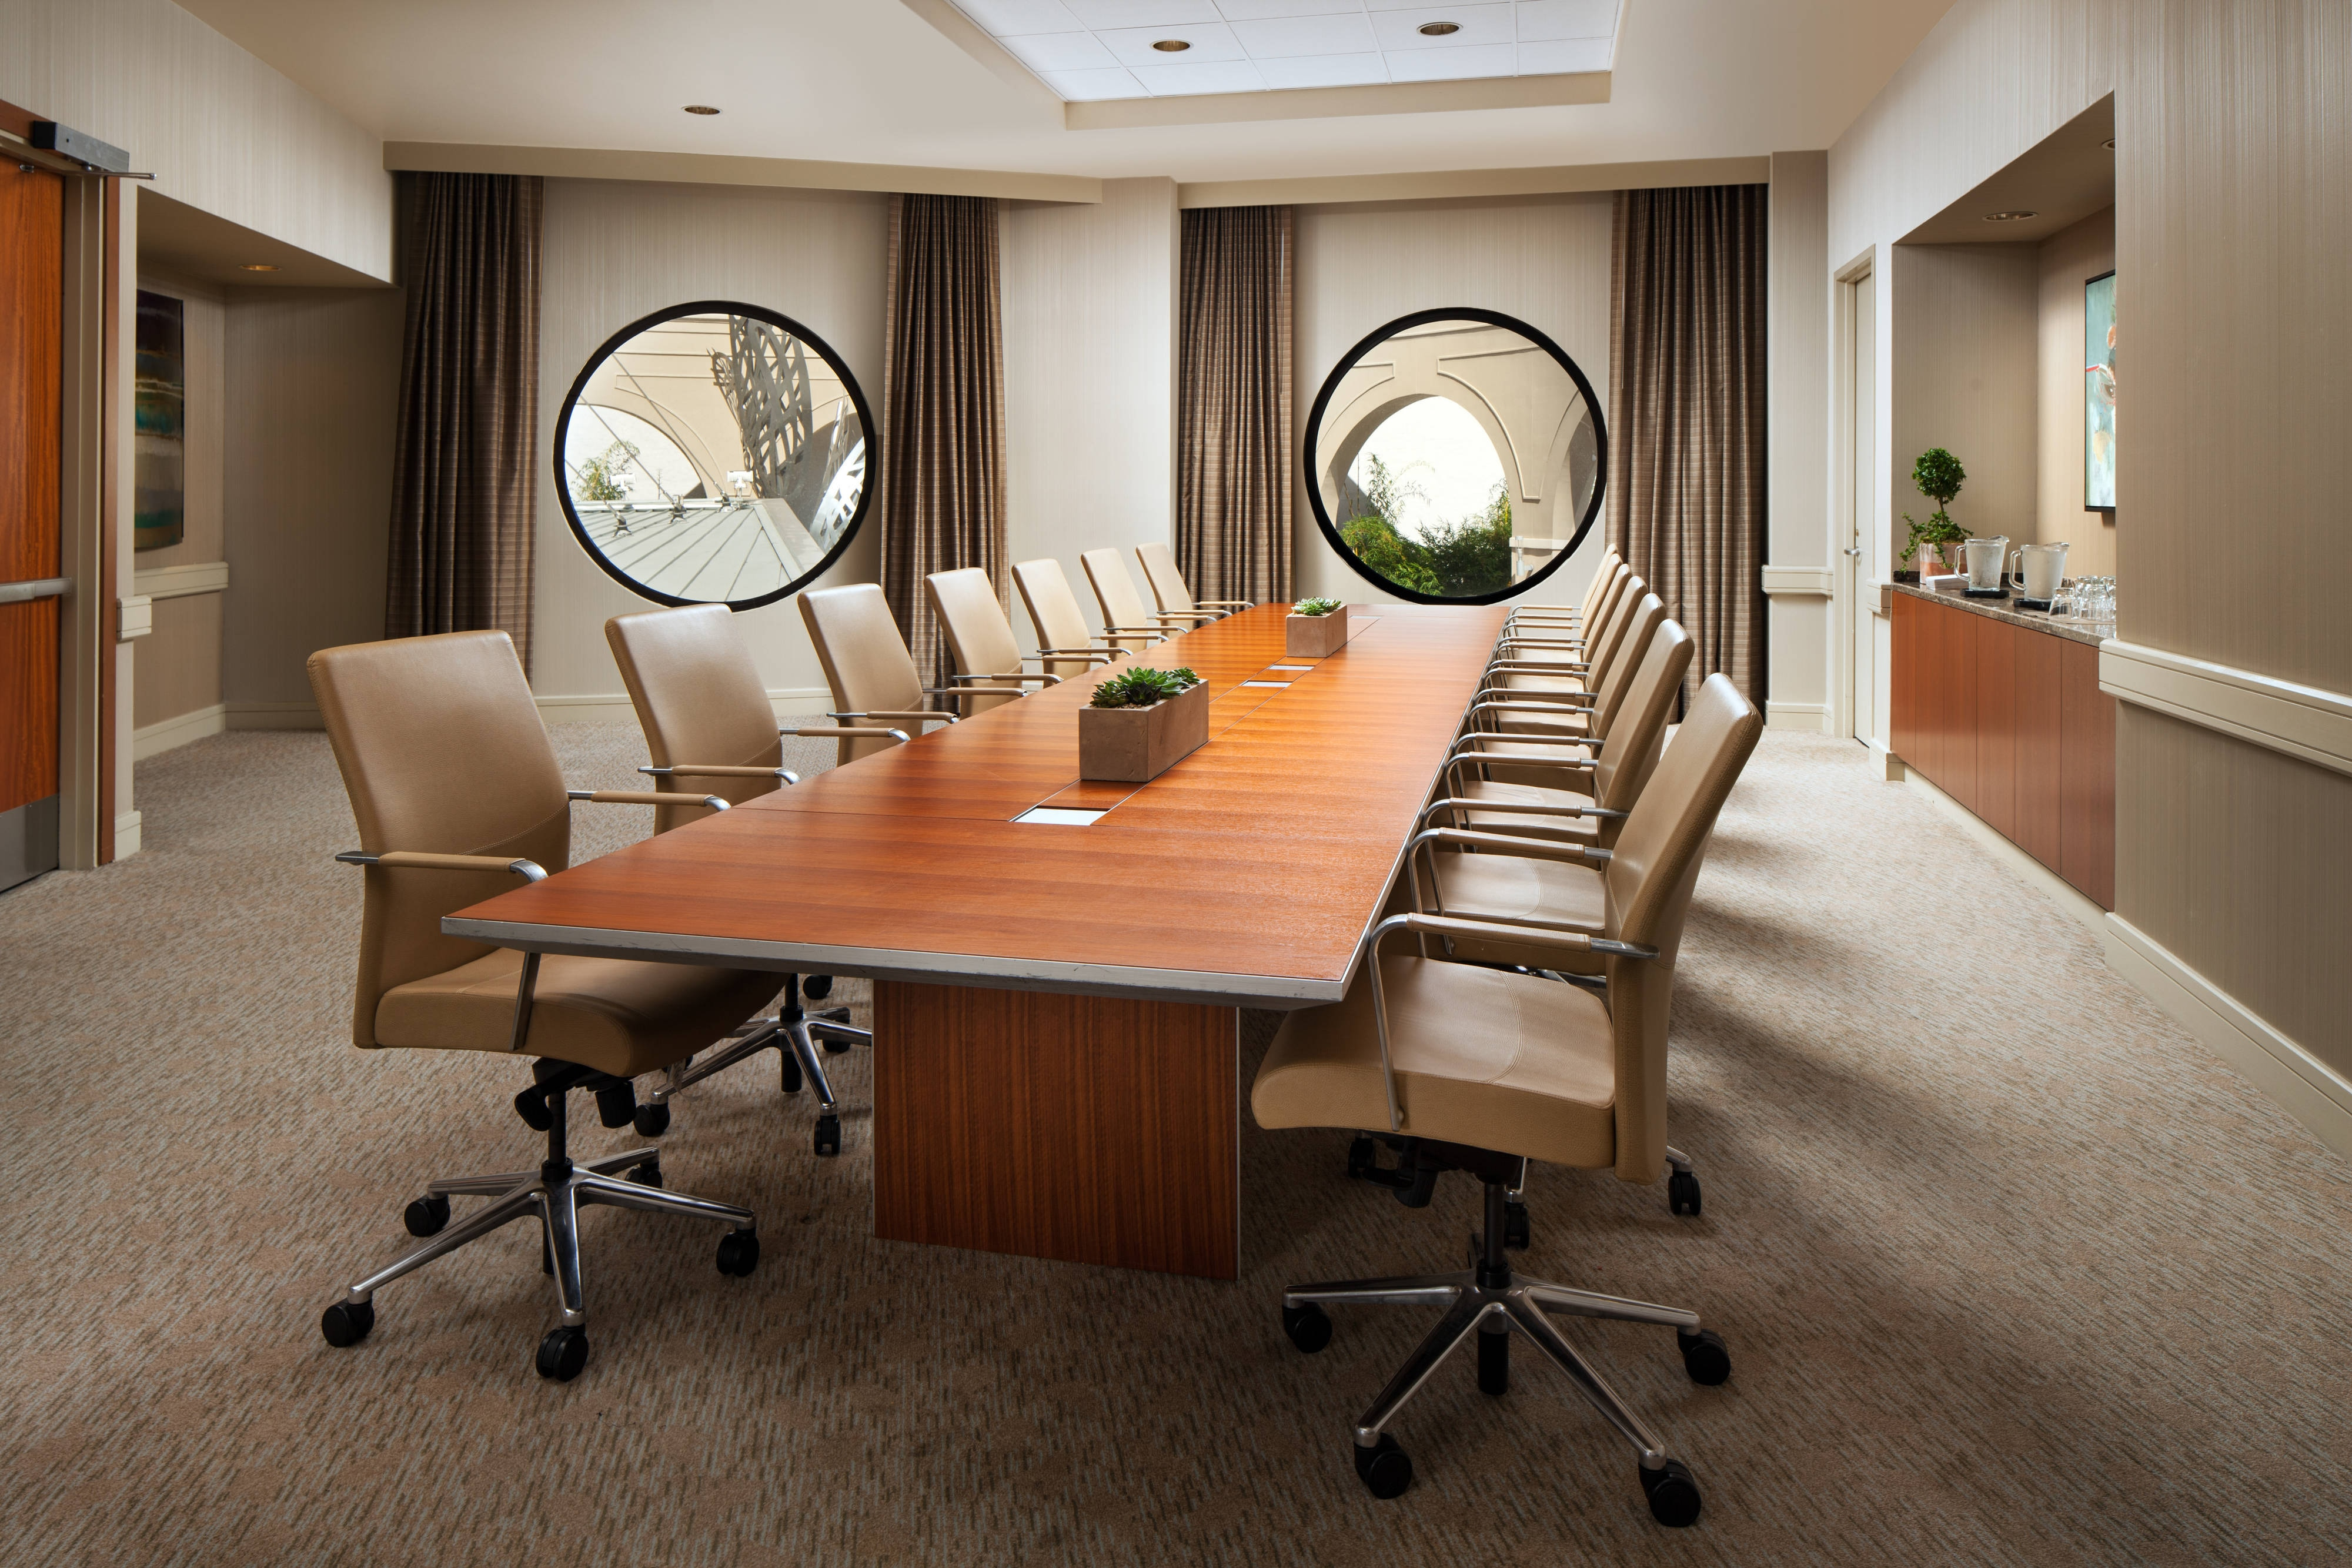 Pacifica Boardroom - Conference Setup